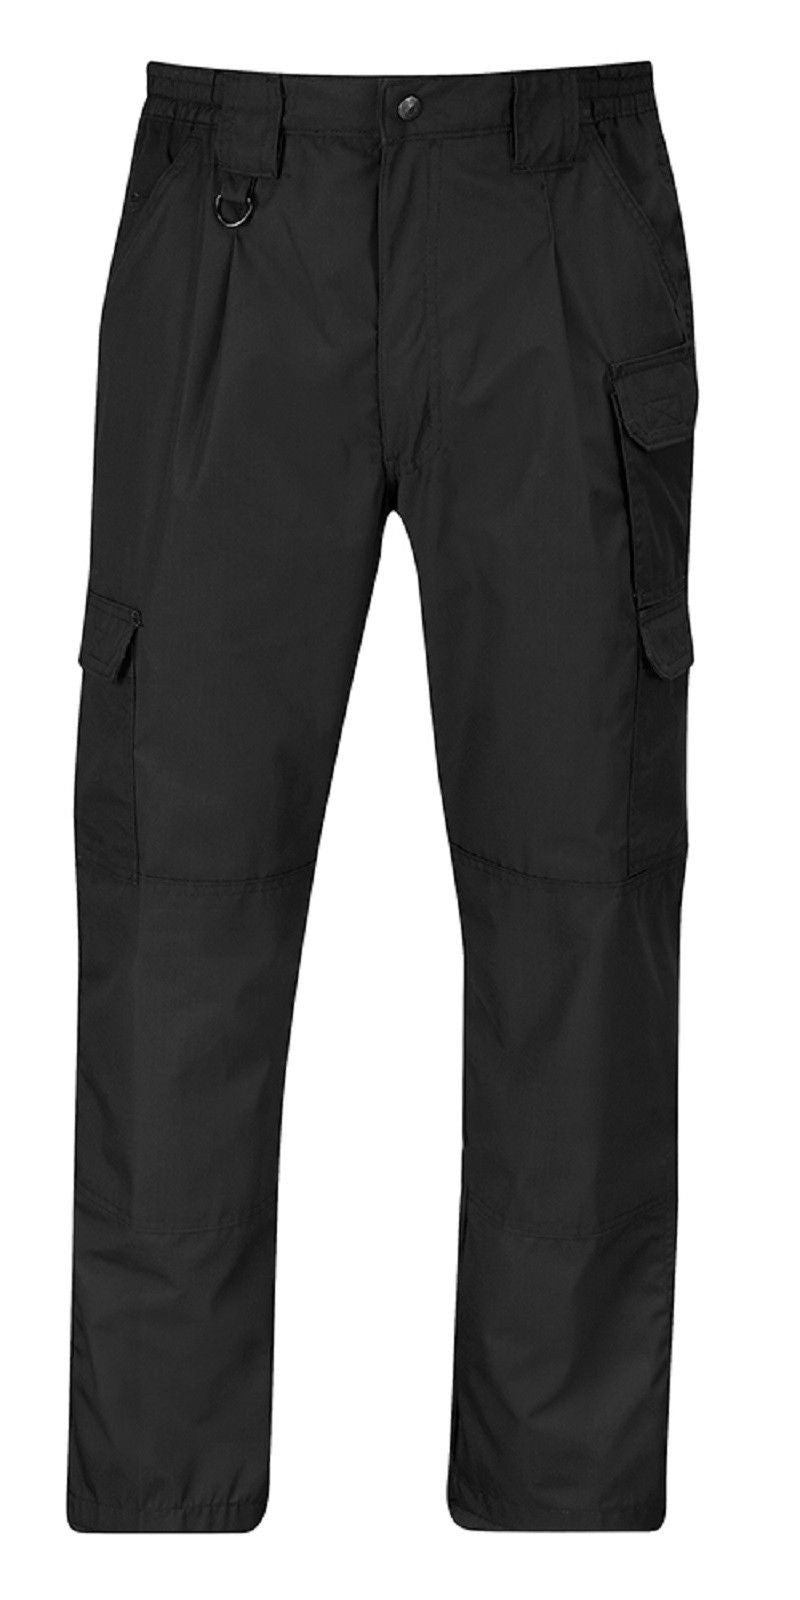 Propper Big and Tall Tactical Pant - Lightweight Ripstop Uniform Plus Sizes  Black Charcoal ... 0b1251d1206